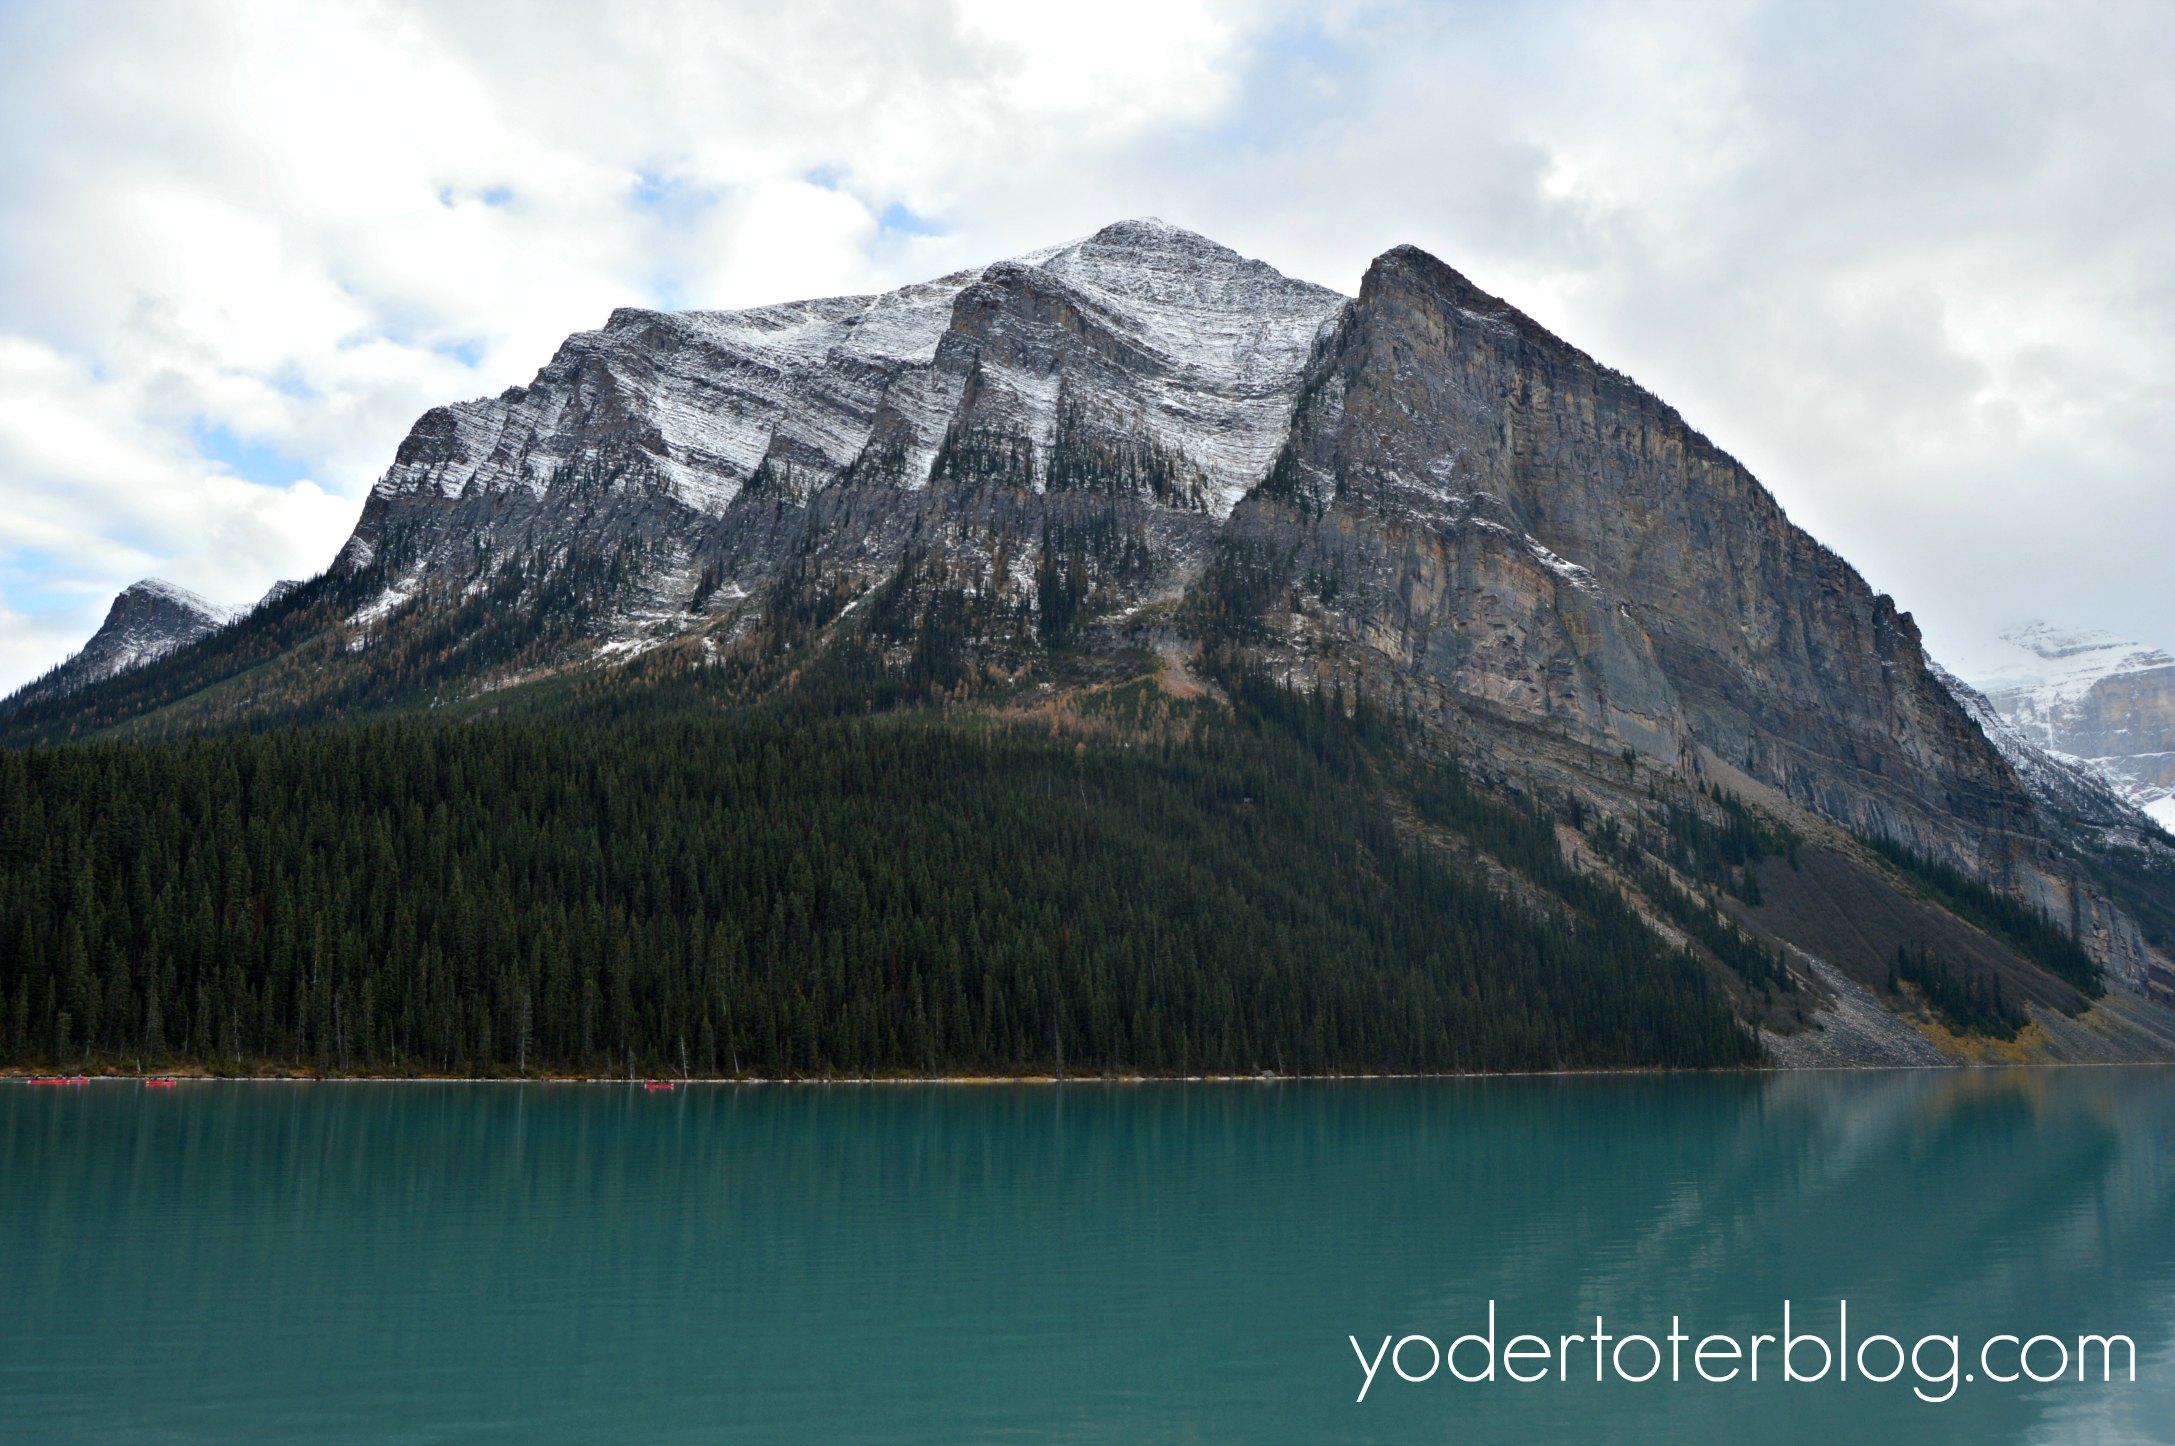 The breathtaking scenery outside of the Fairmont Chateau Lake Louise.